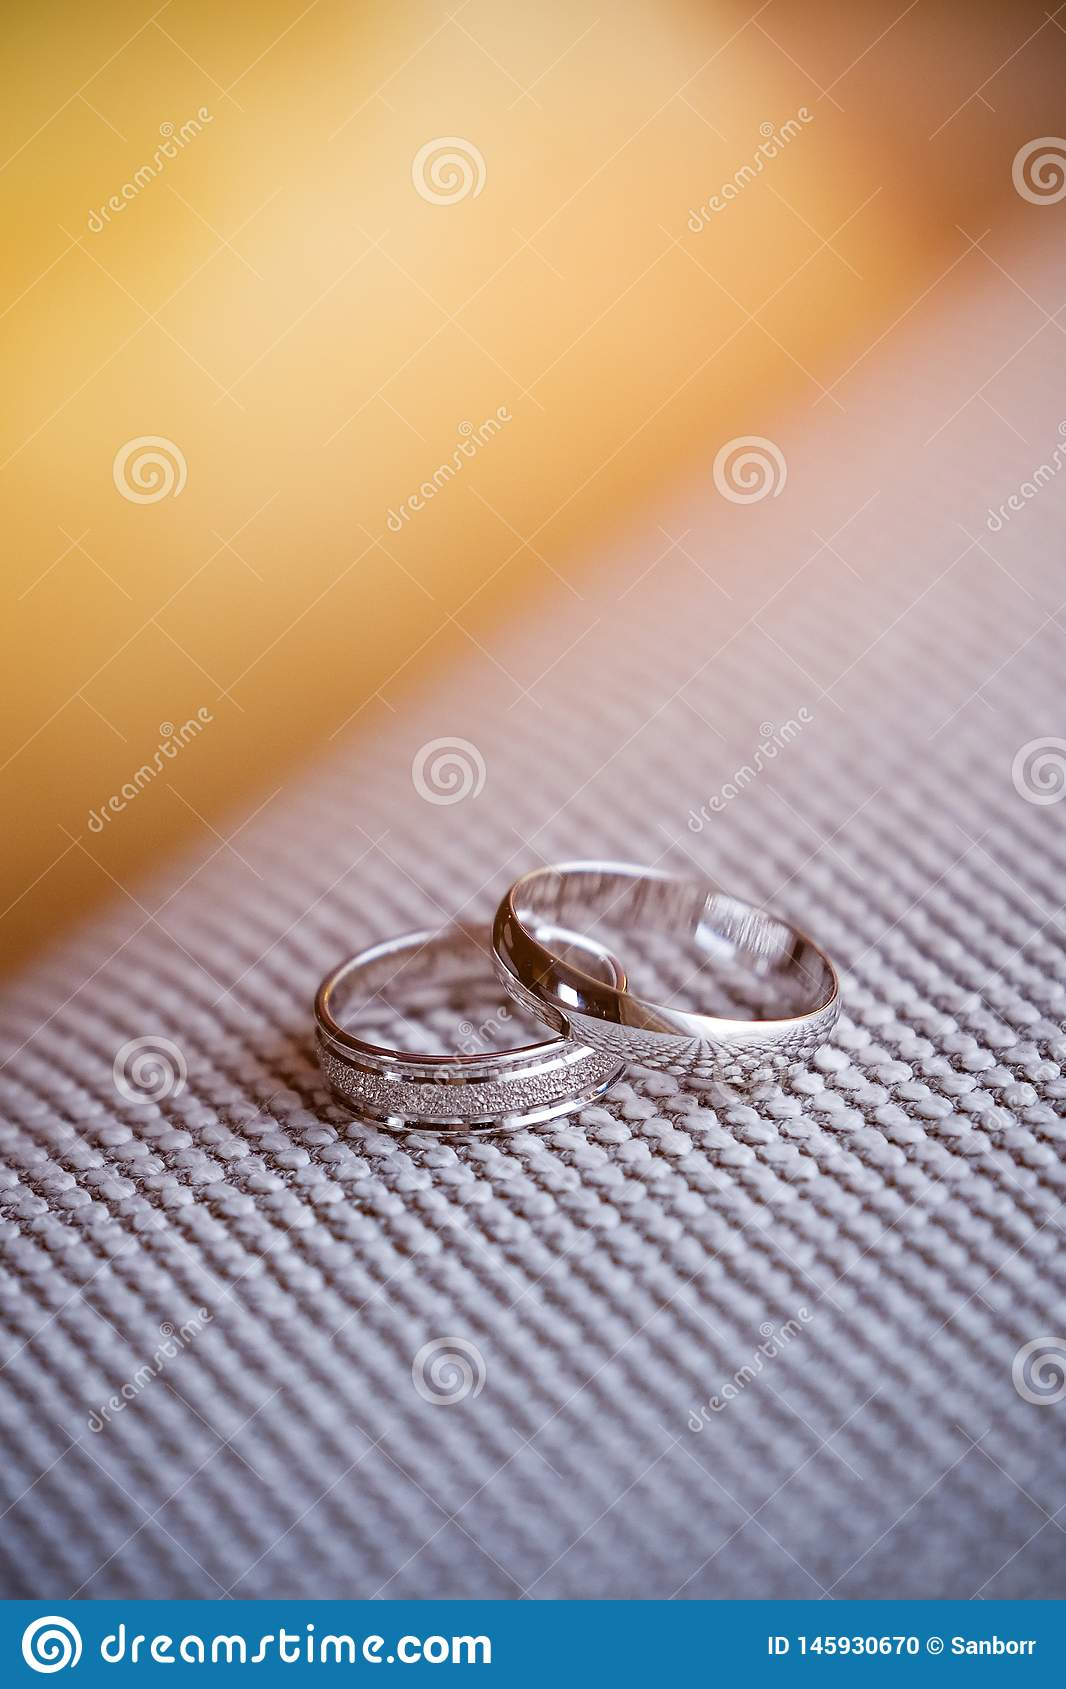 Two beautiful white gold engagement rings with diamond stones lie on the fabric with a rough texture. Wedding ring